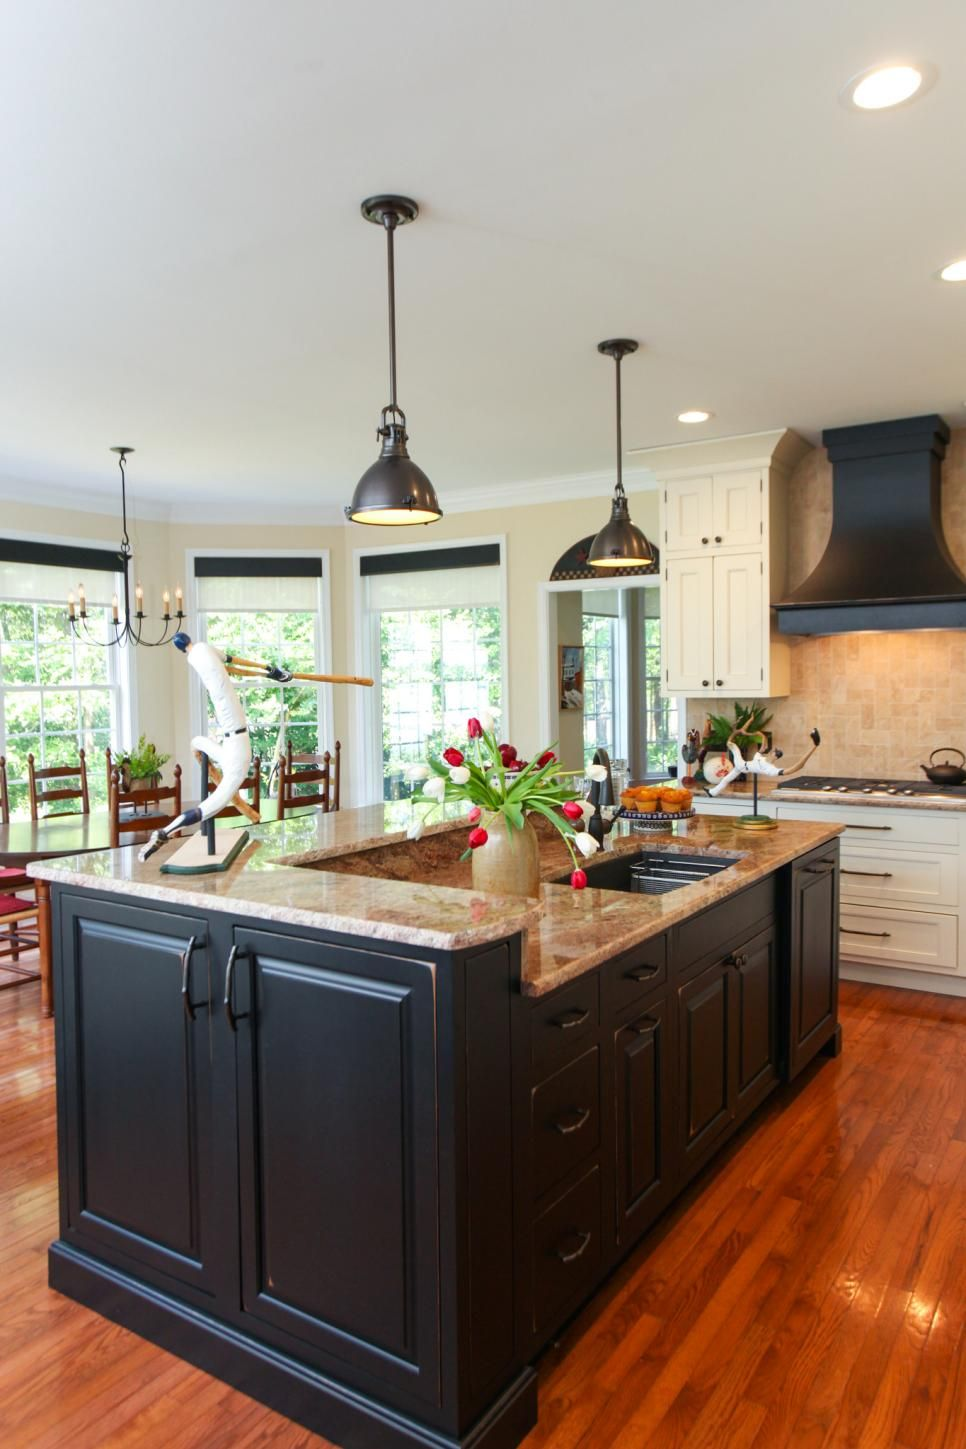 Stylish Black Island in Traditional Kitchen Kitchen